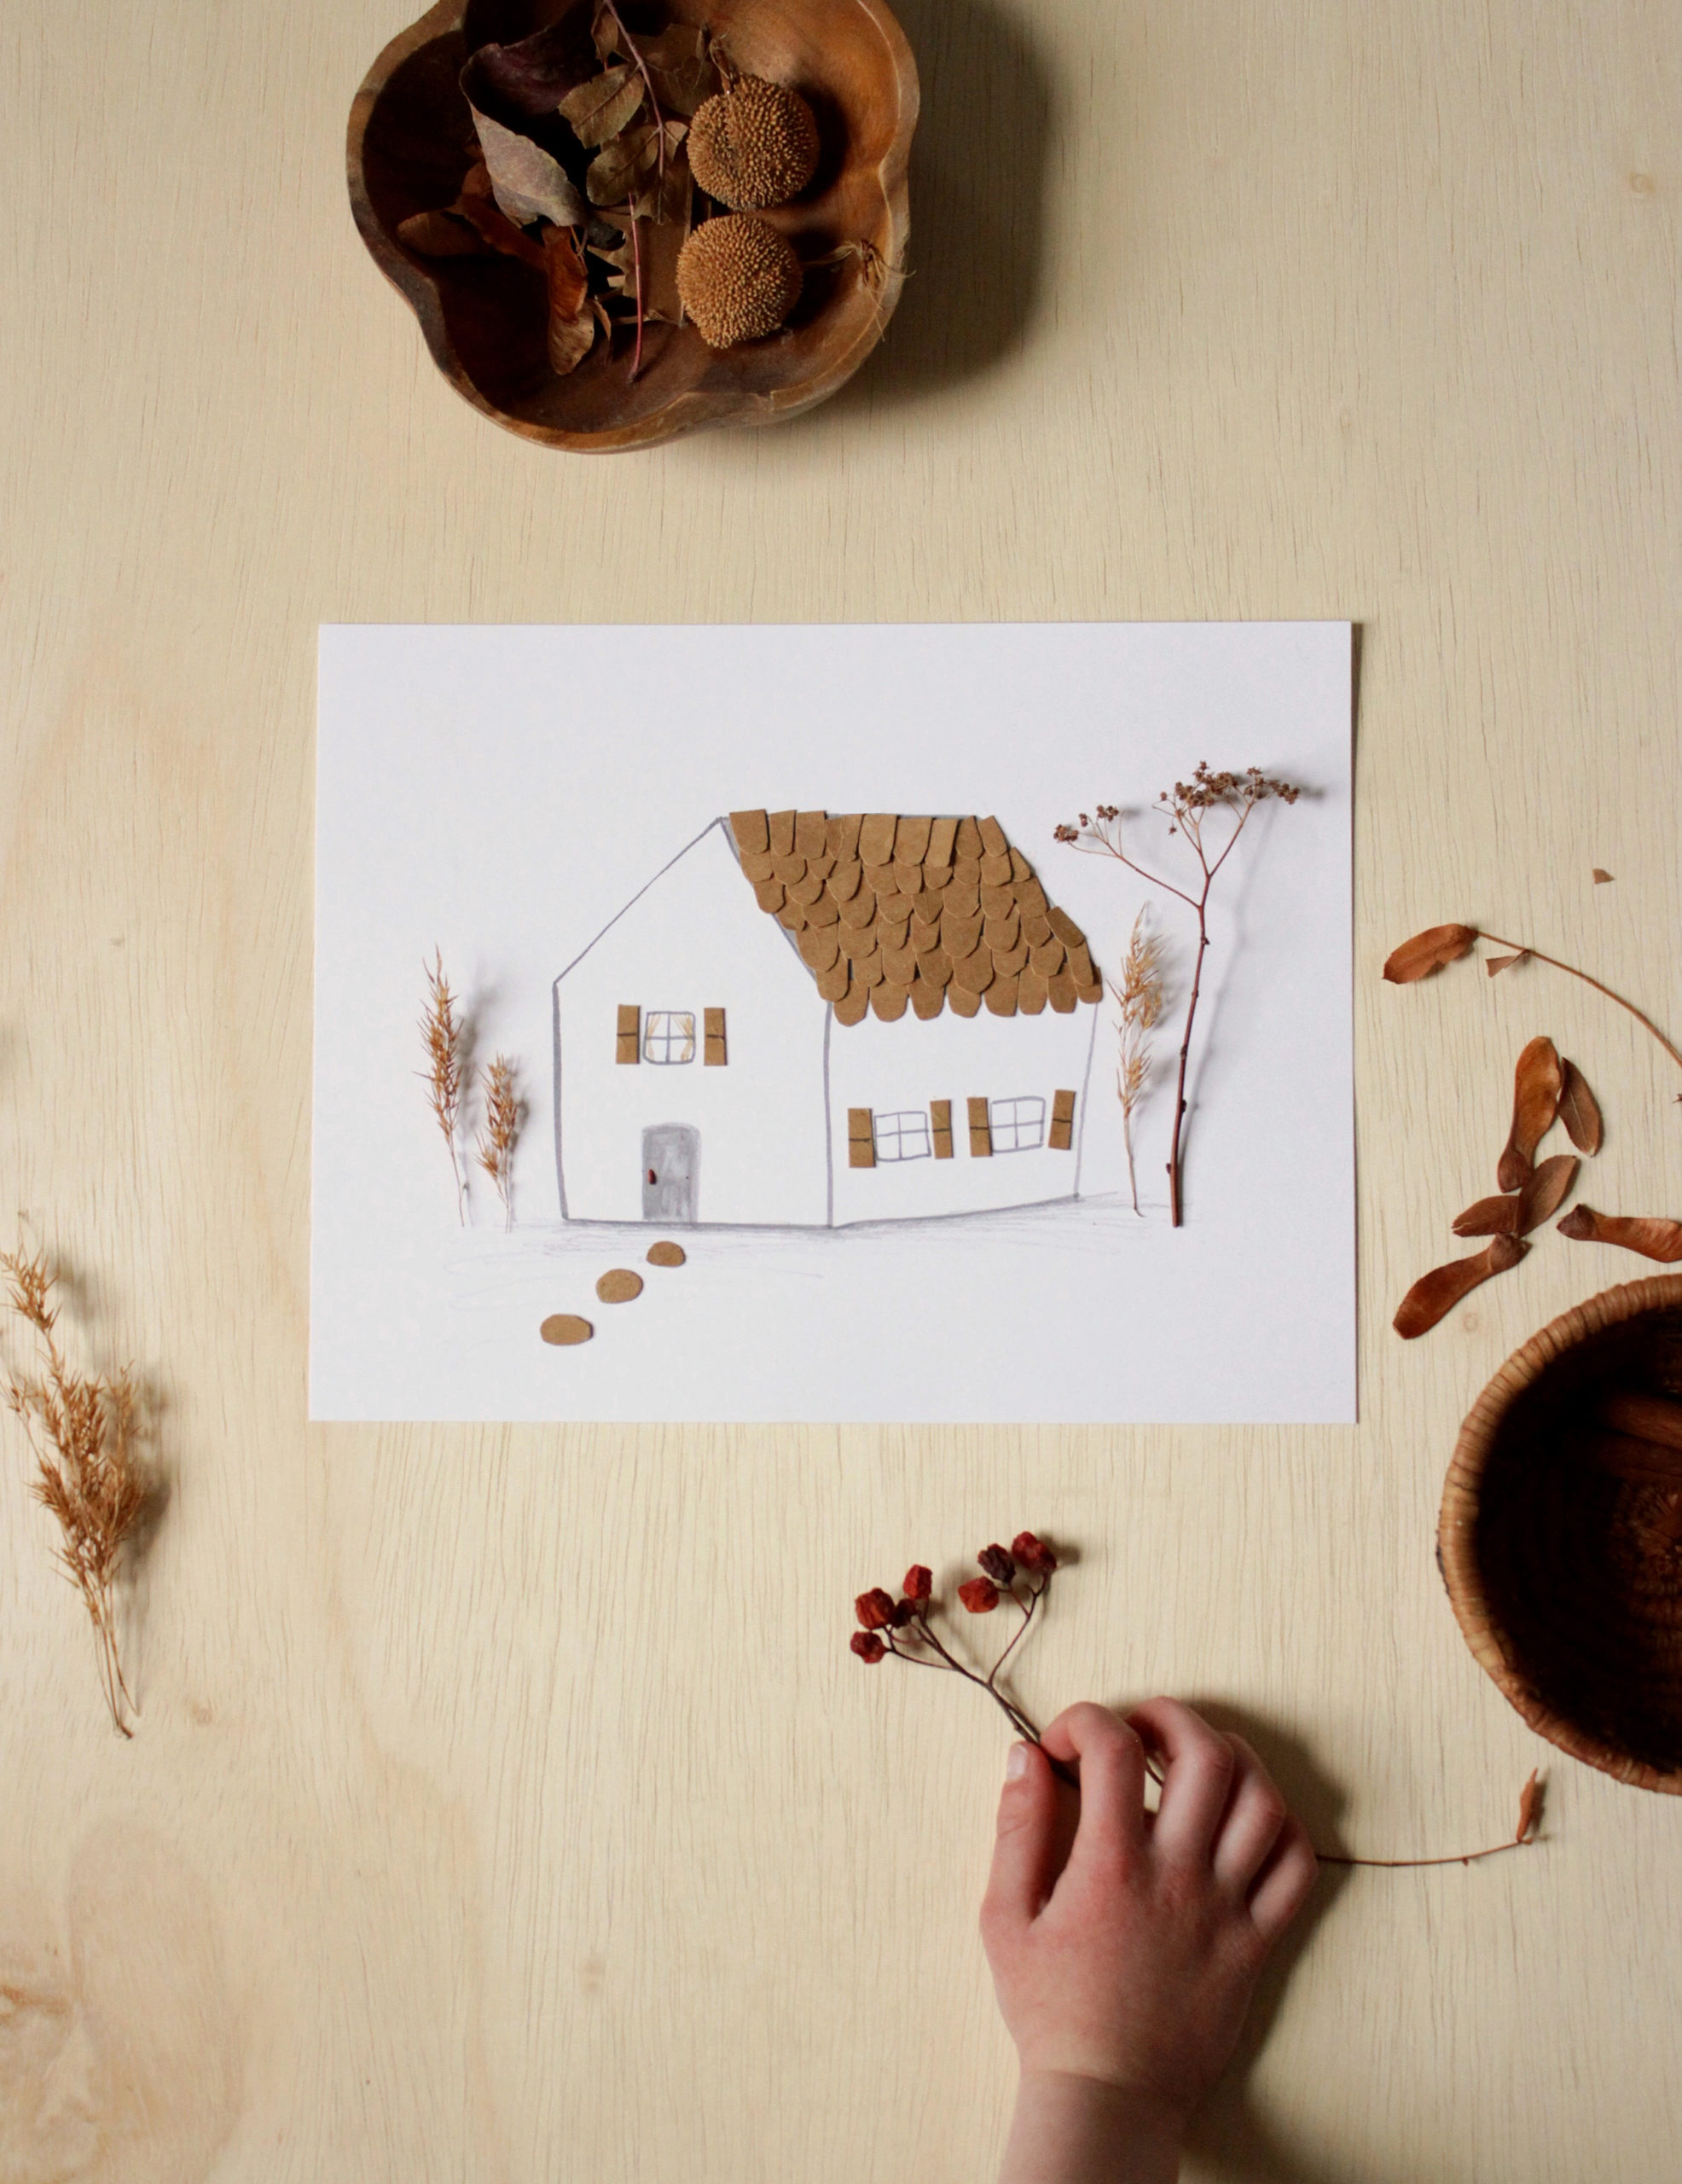 Decorate a House